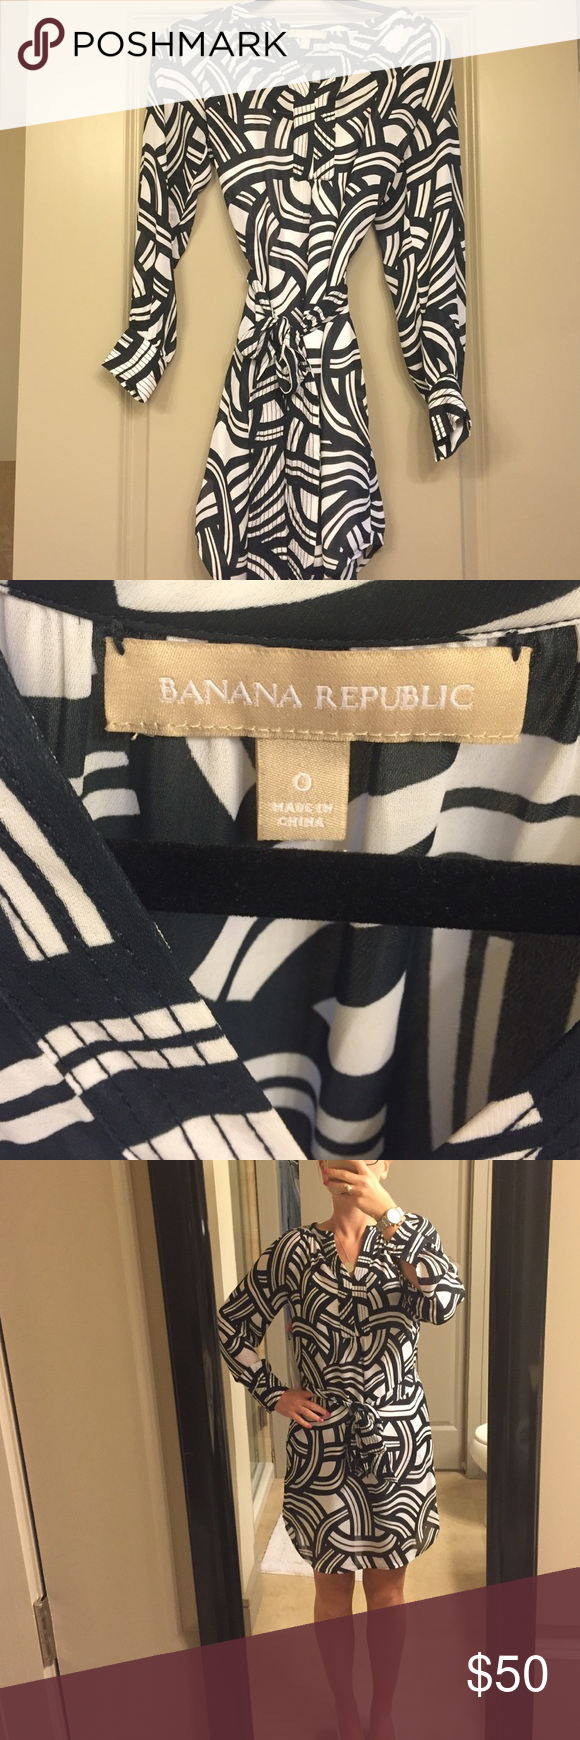 Banana Republic, lightweight, belted dress, size 0 Banana Republic size 0 belted dress. long sleeves! Navy and white design. I would say this is NOT true to size, as I typically wear sizes 2,4 or sometimes 6 (I'd say Banana sizes are a bit skewed across the board). Perfect dress for the summer.. Dress up or down! Banana Republic Dresses Midi